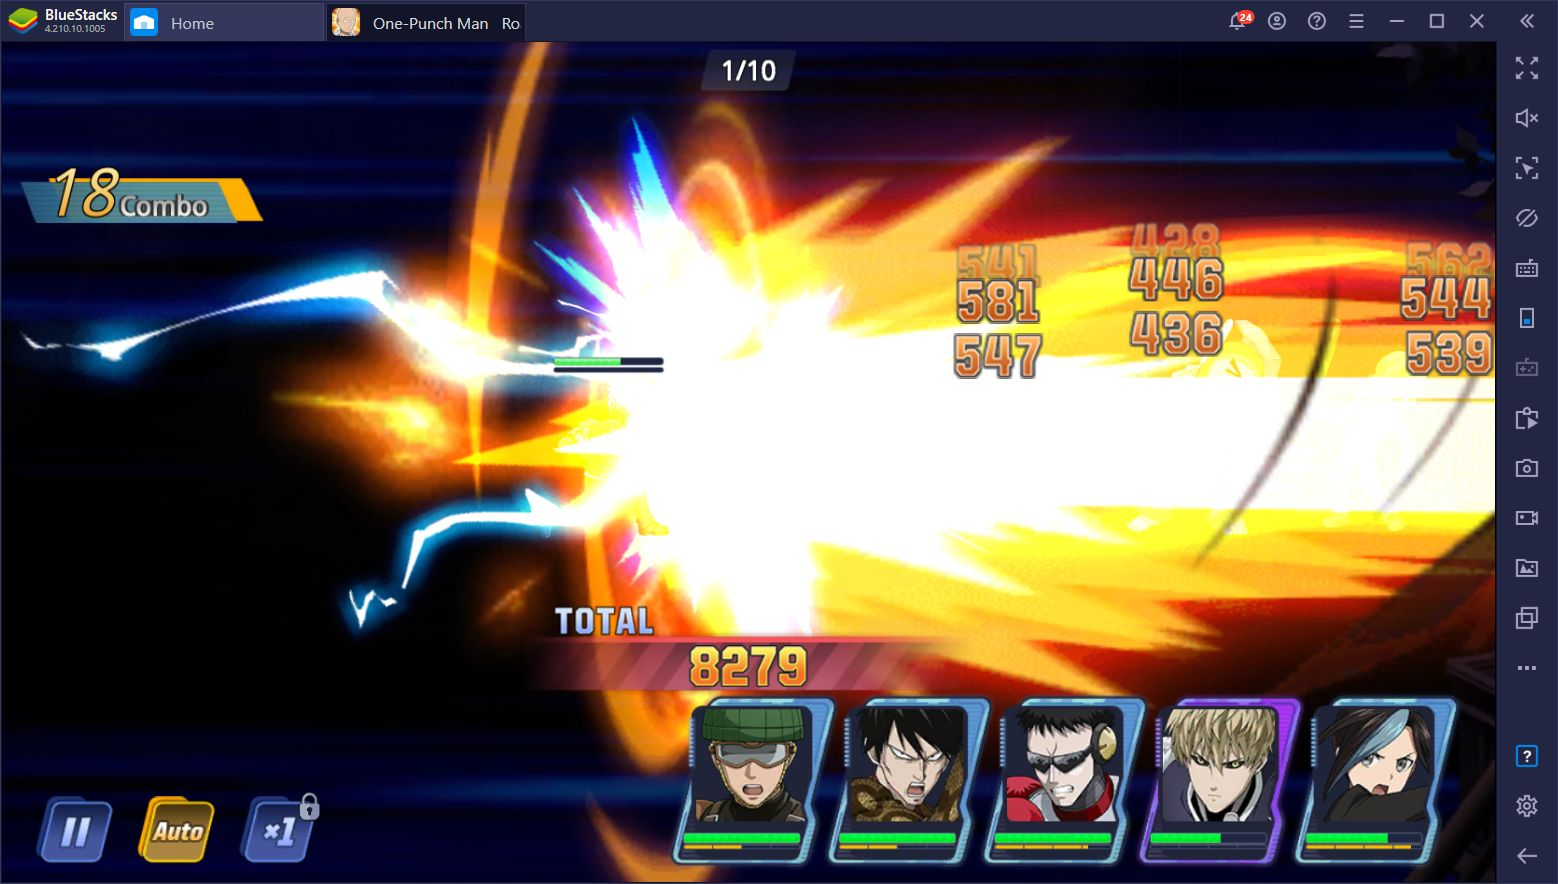 One Punch Man: Road to Hero 2.0 - Tips, Tricks, and Strategies